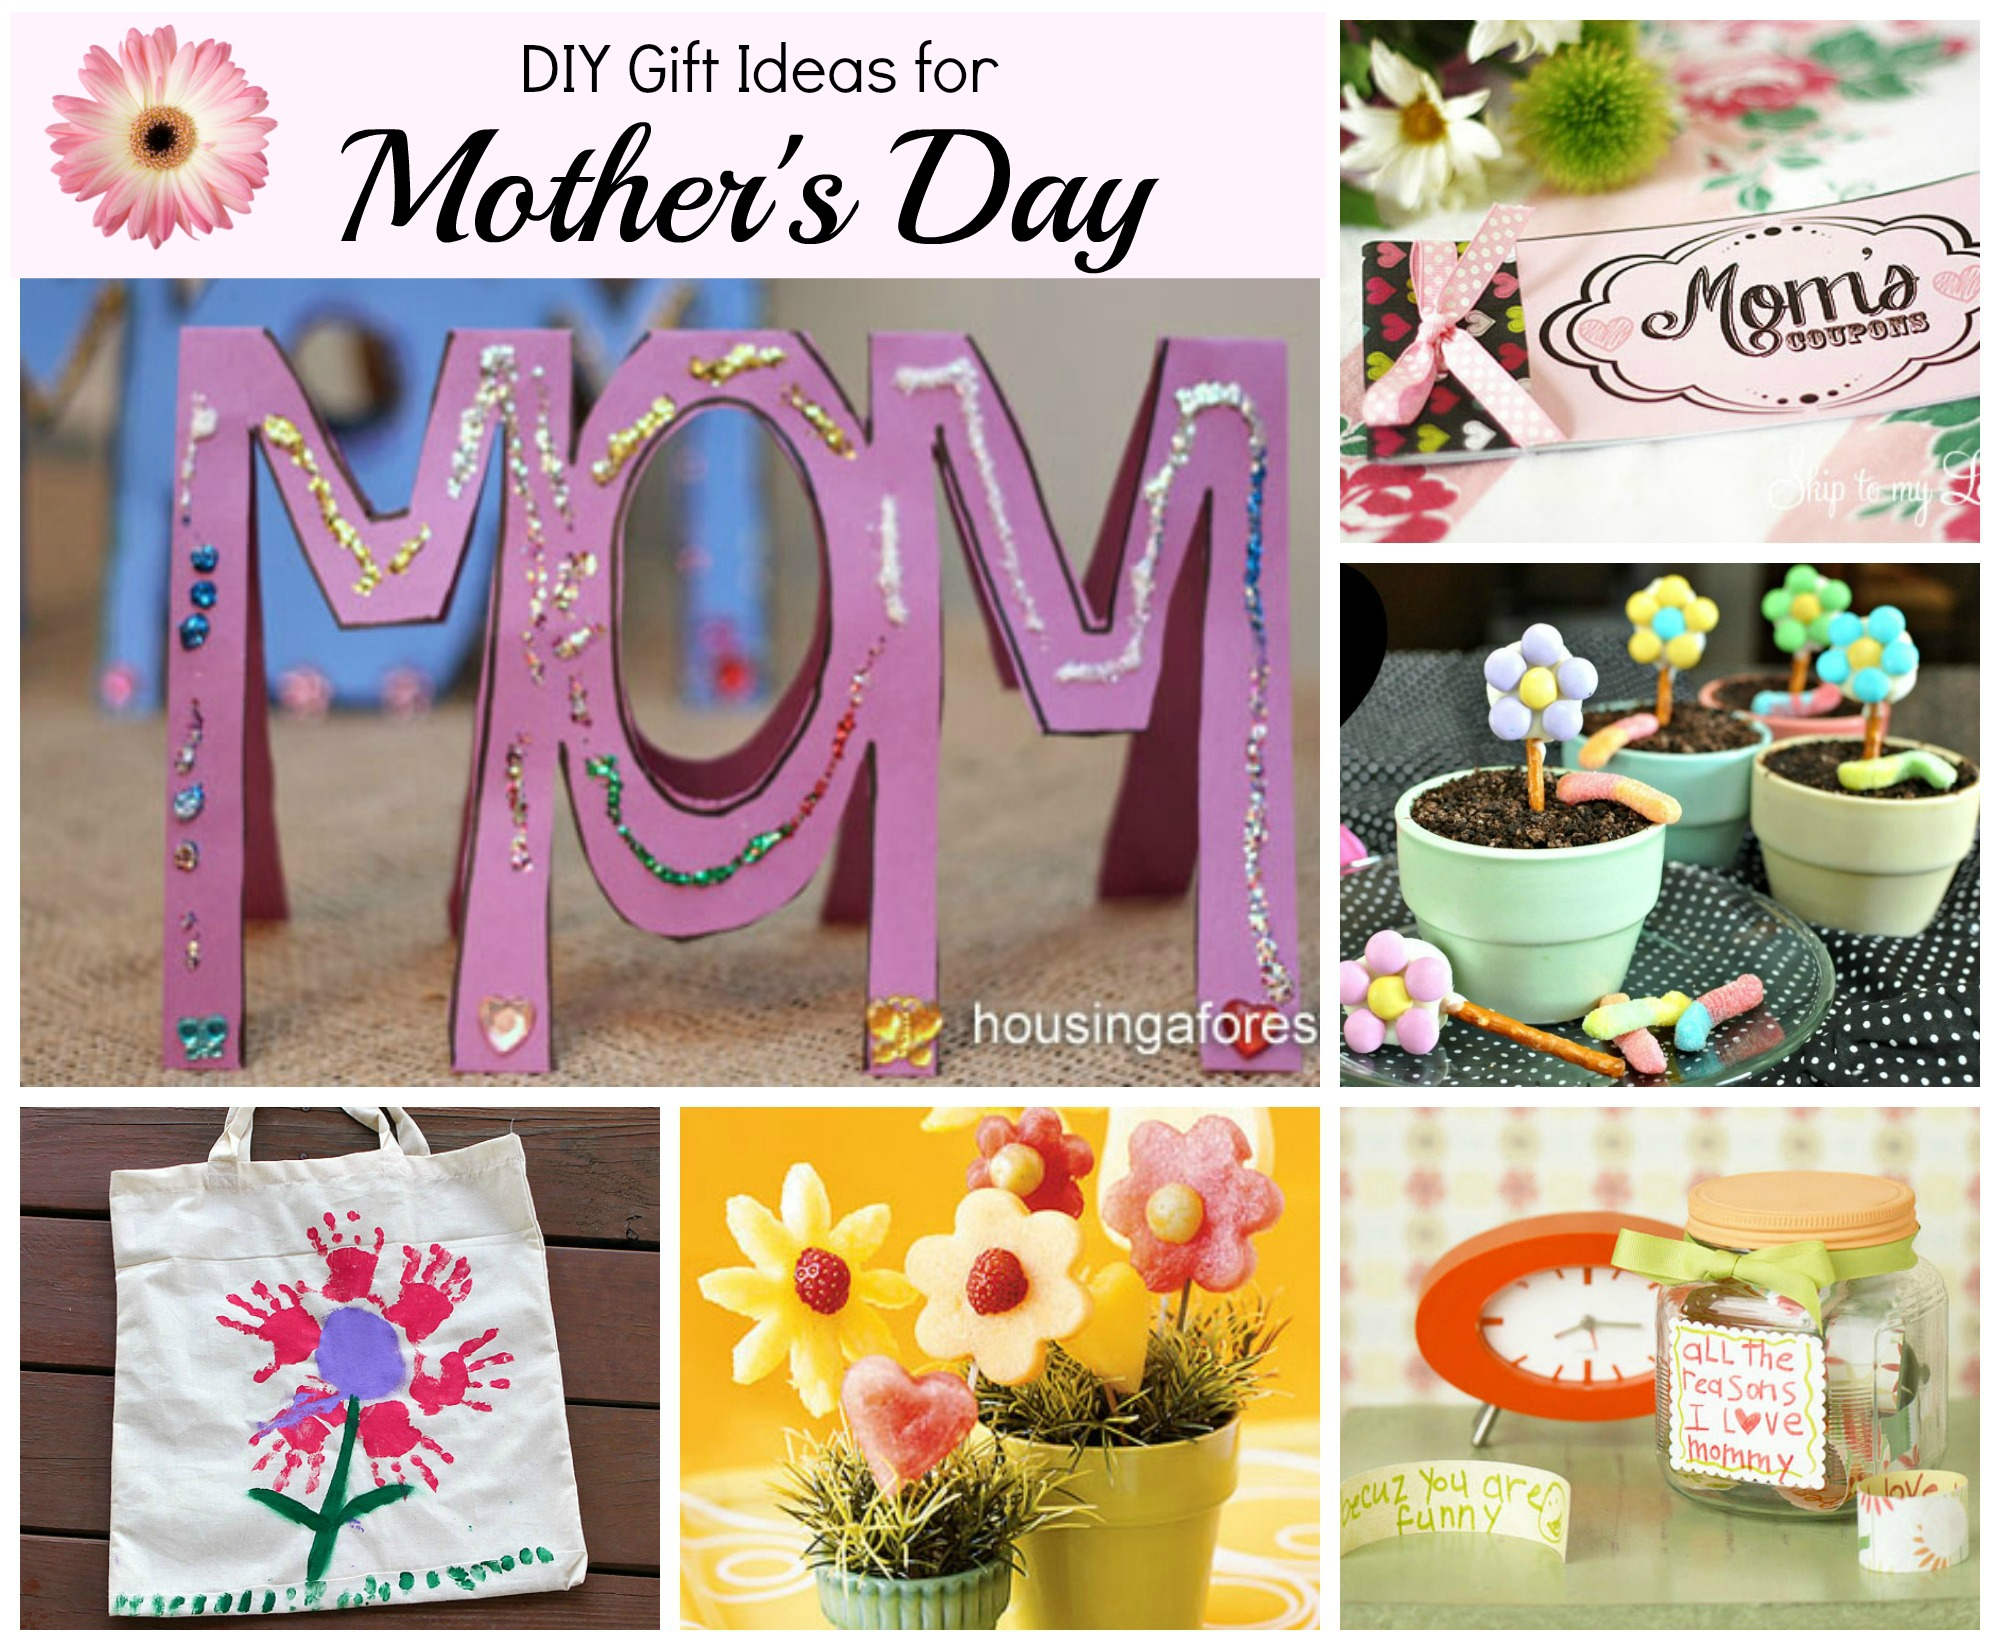 Mother S Day Gift Ideas Celebrating Holidays: mothers day presents diy